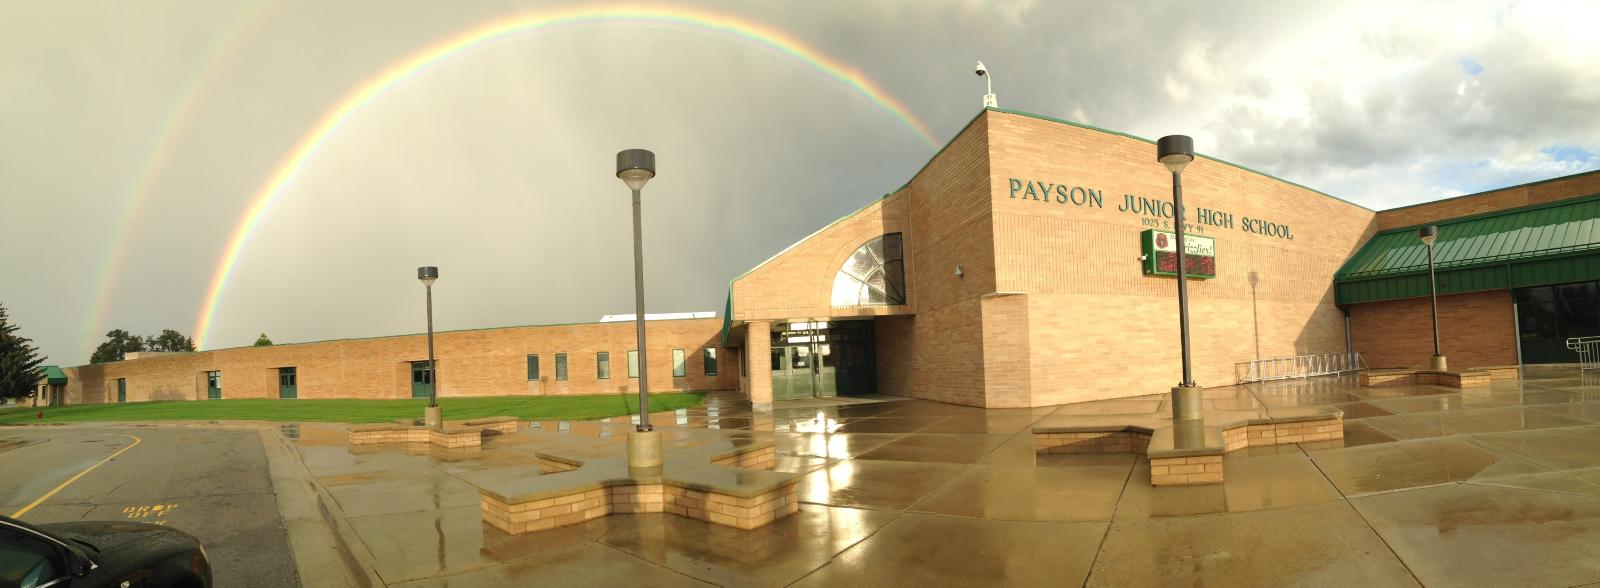 PJHS graced with a full rainbow.